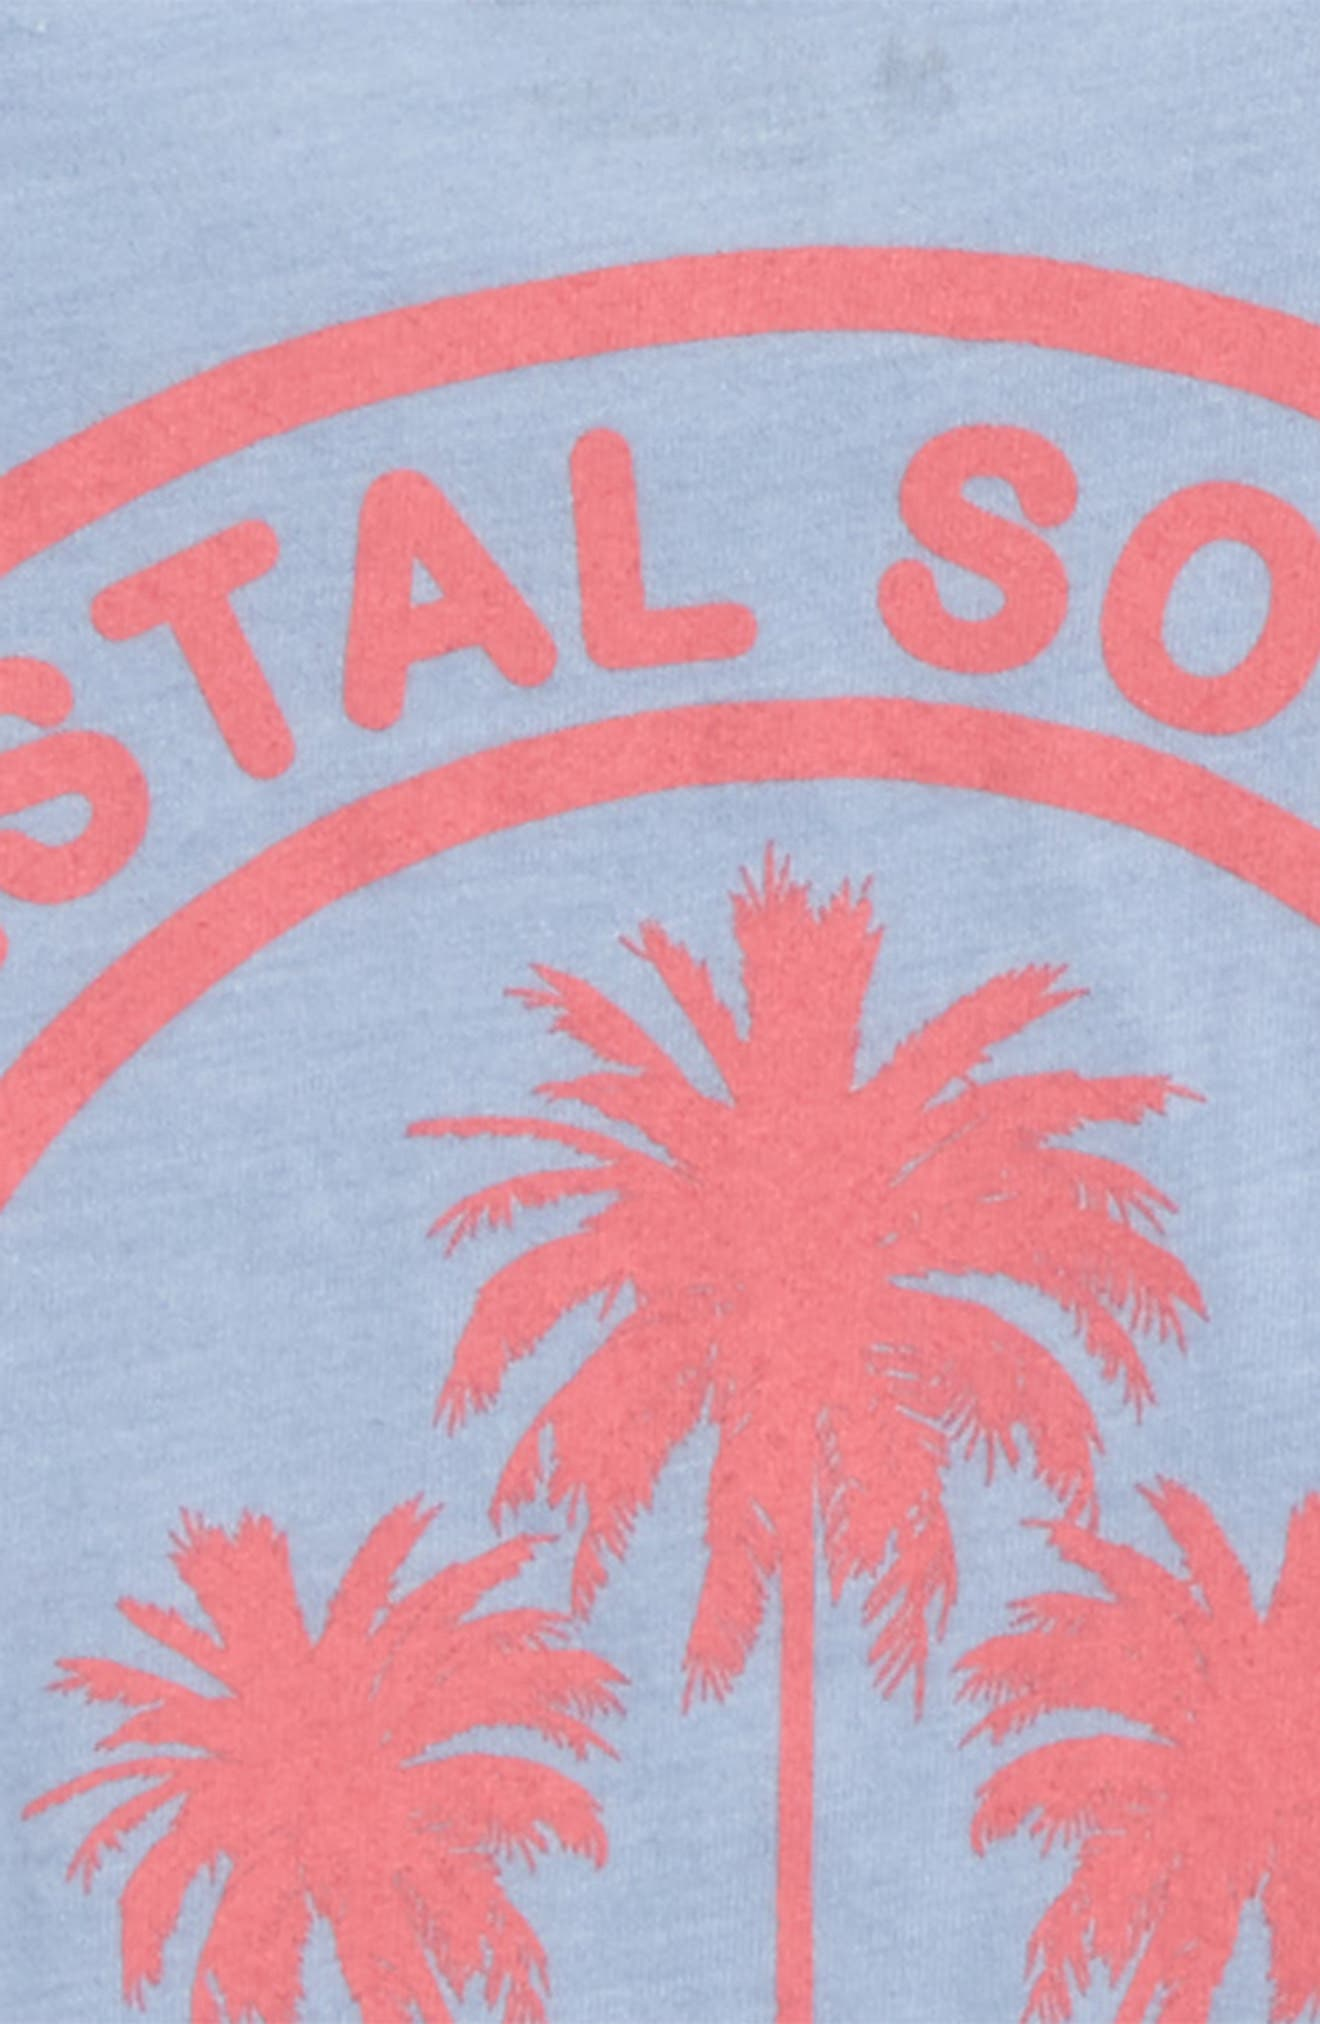 Coastal Society Graphic Tee,                             Alternate thumbnail 3, color,                             Eventide